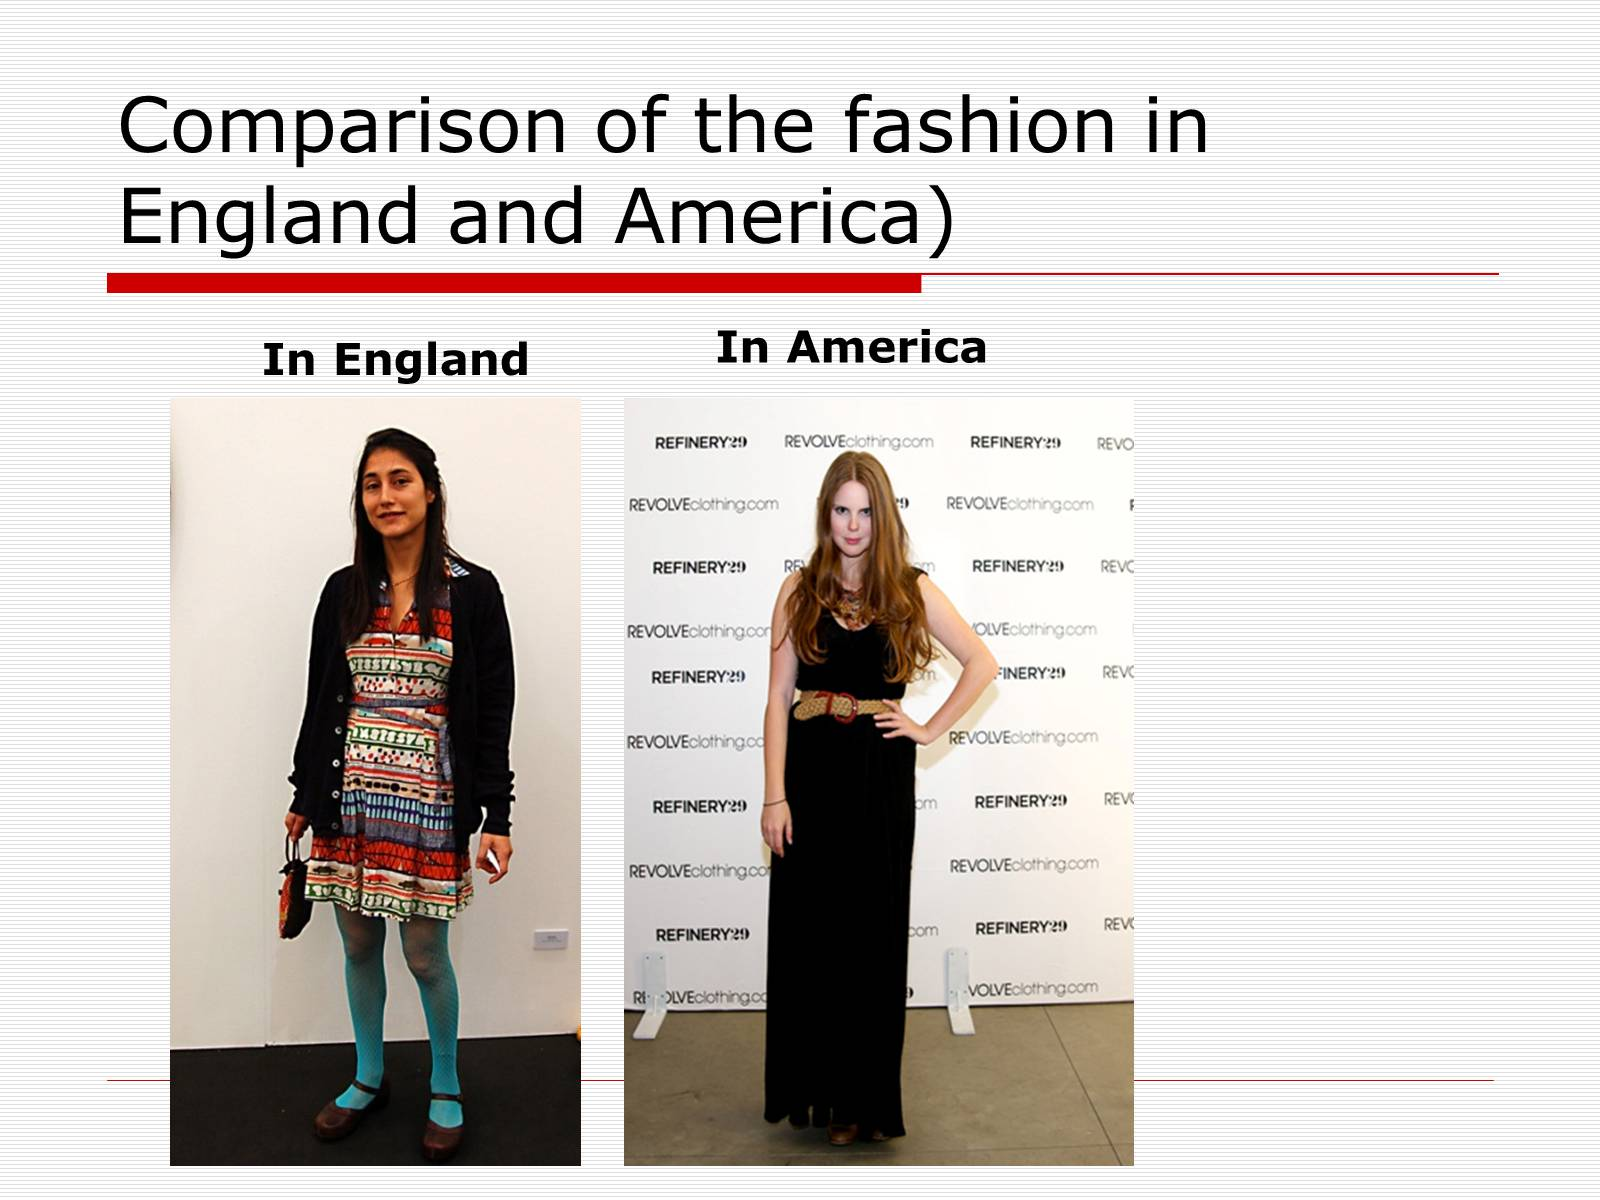 Презентація на тему «Comparison of the fashion in England and America» - Слайд #12